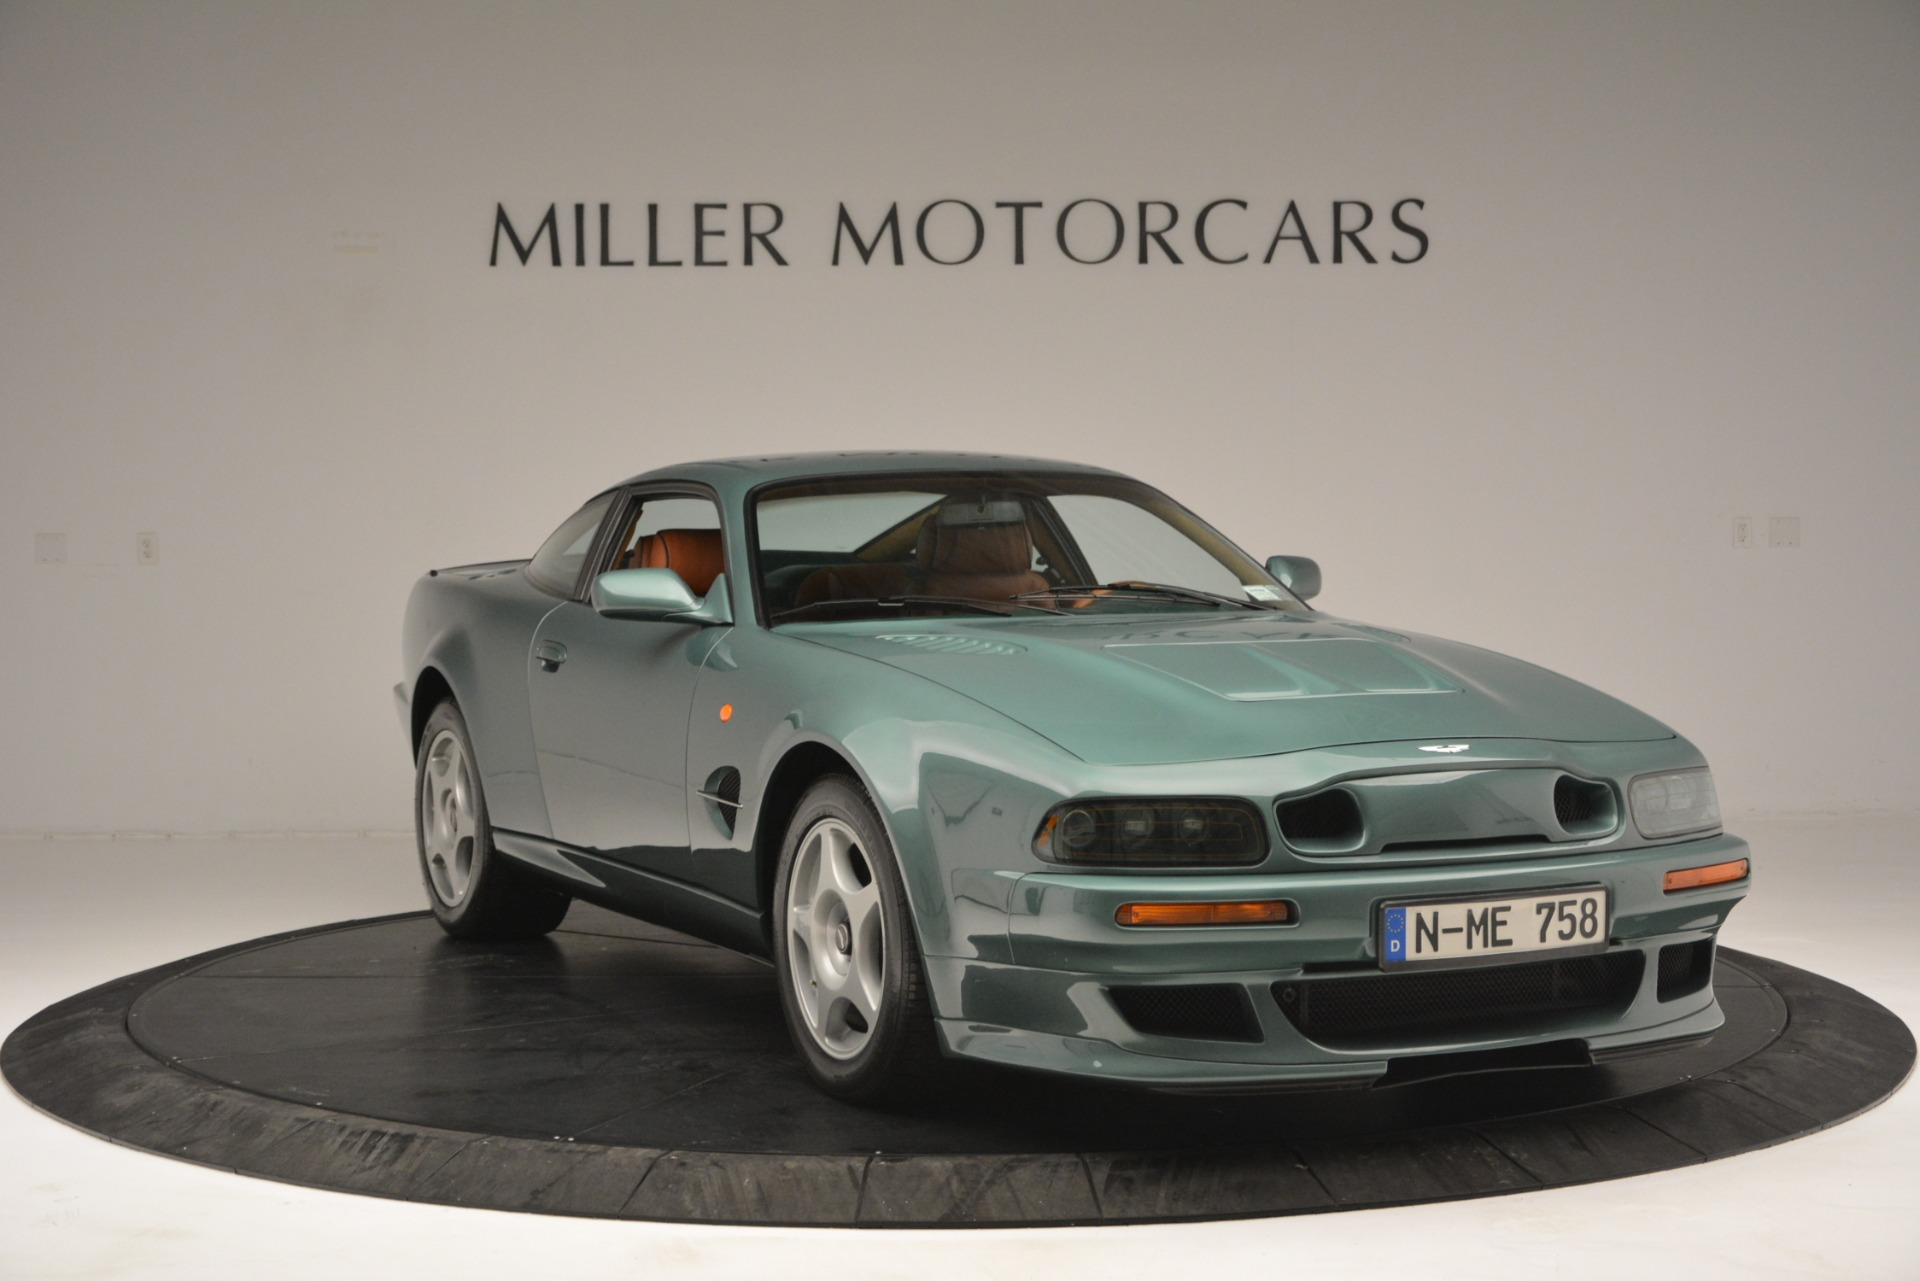 Used 1999 Aston Martin V8 Vantage Le Mans V600 Coupe For Sale In Greenwich, CT 2789_p13